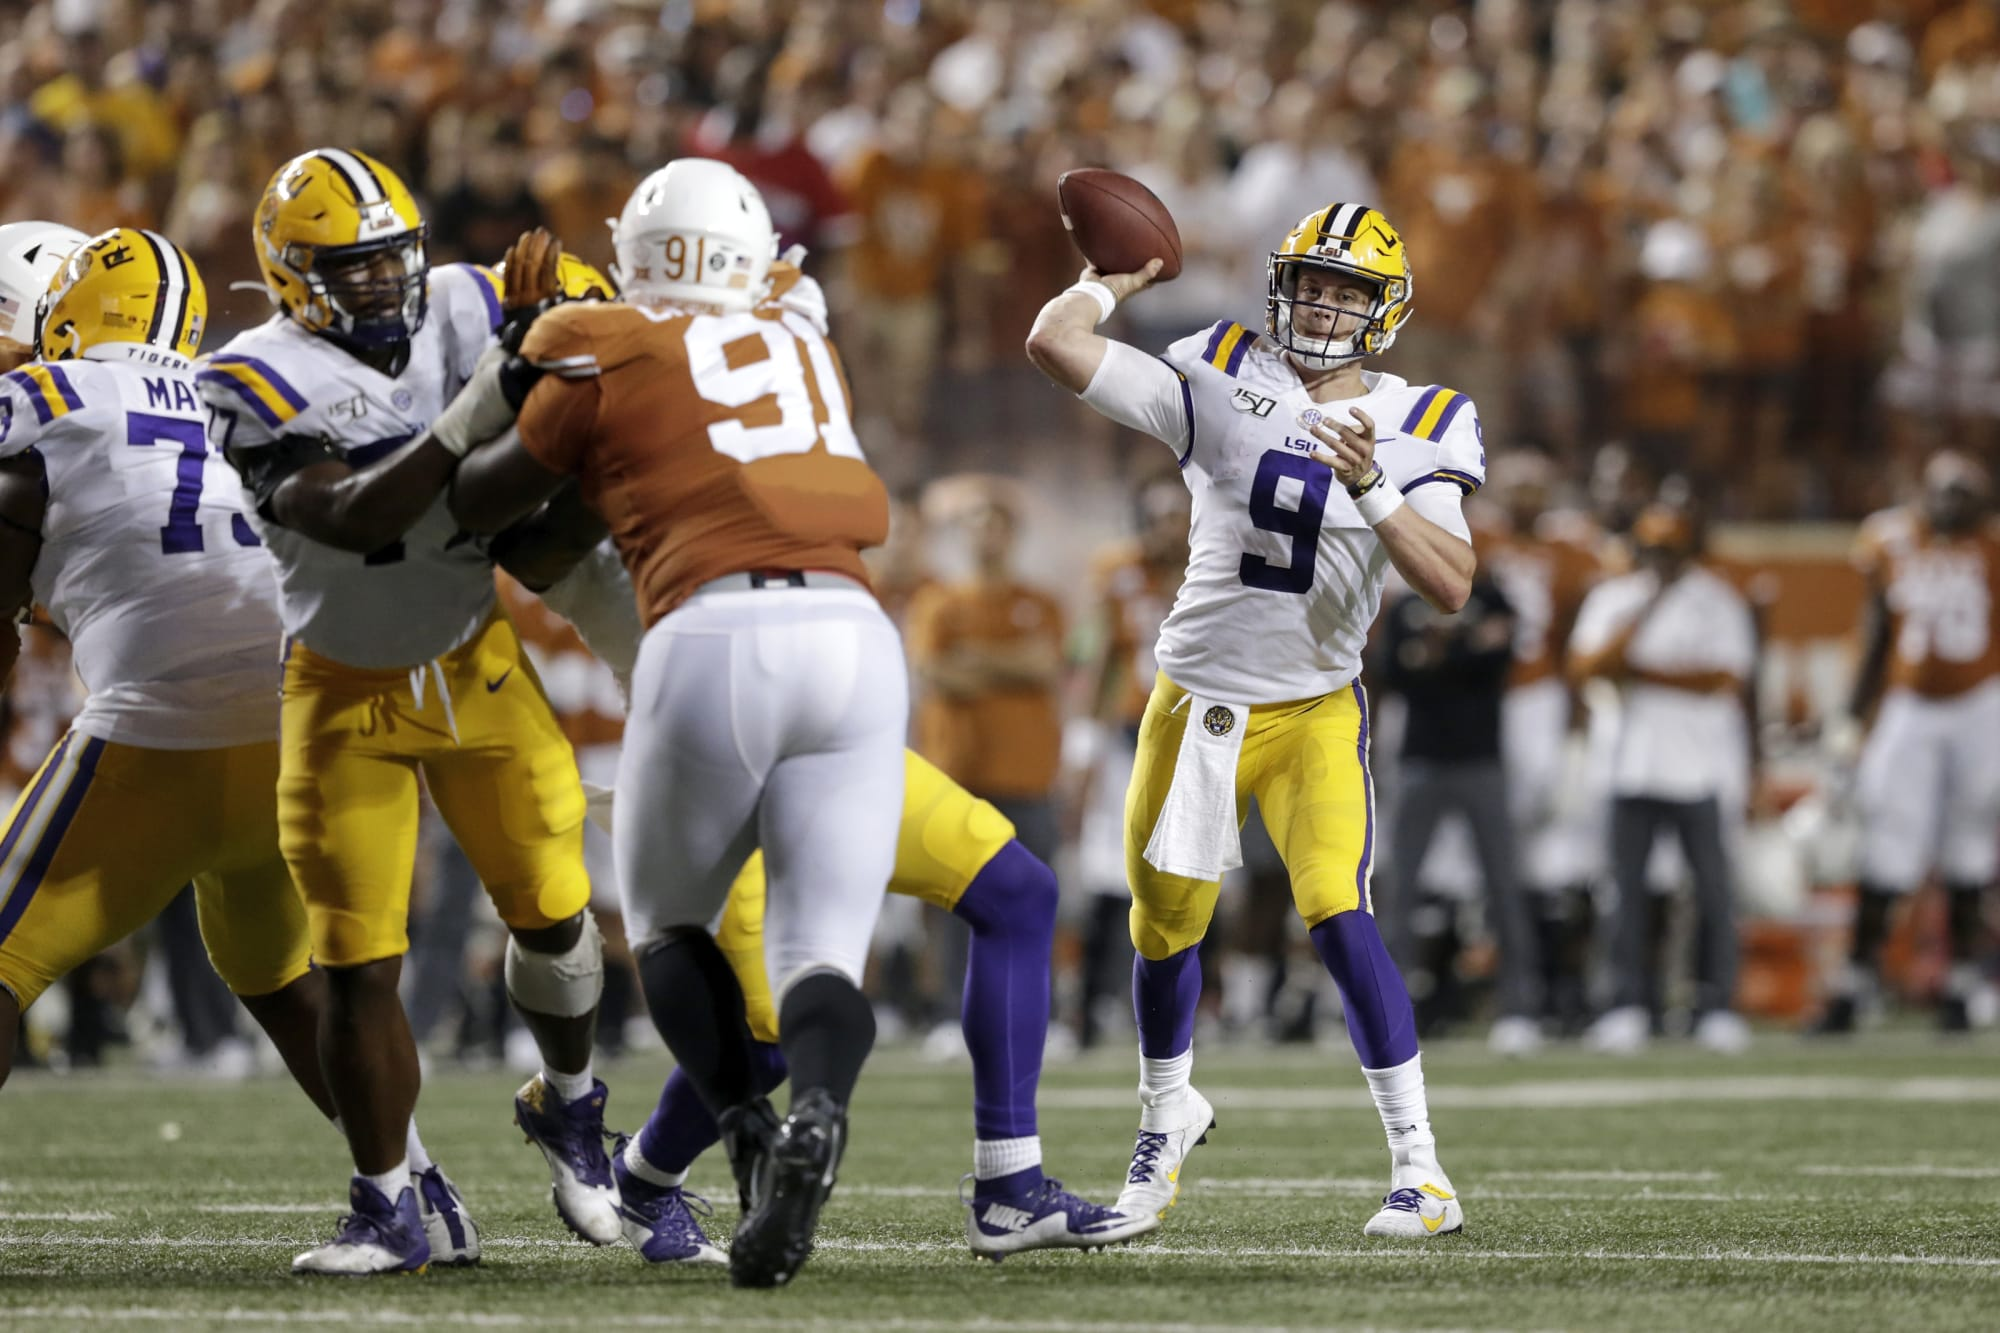 Texas Football: Sam Ehlinger matched Joe Burrow in this passing category